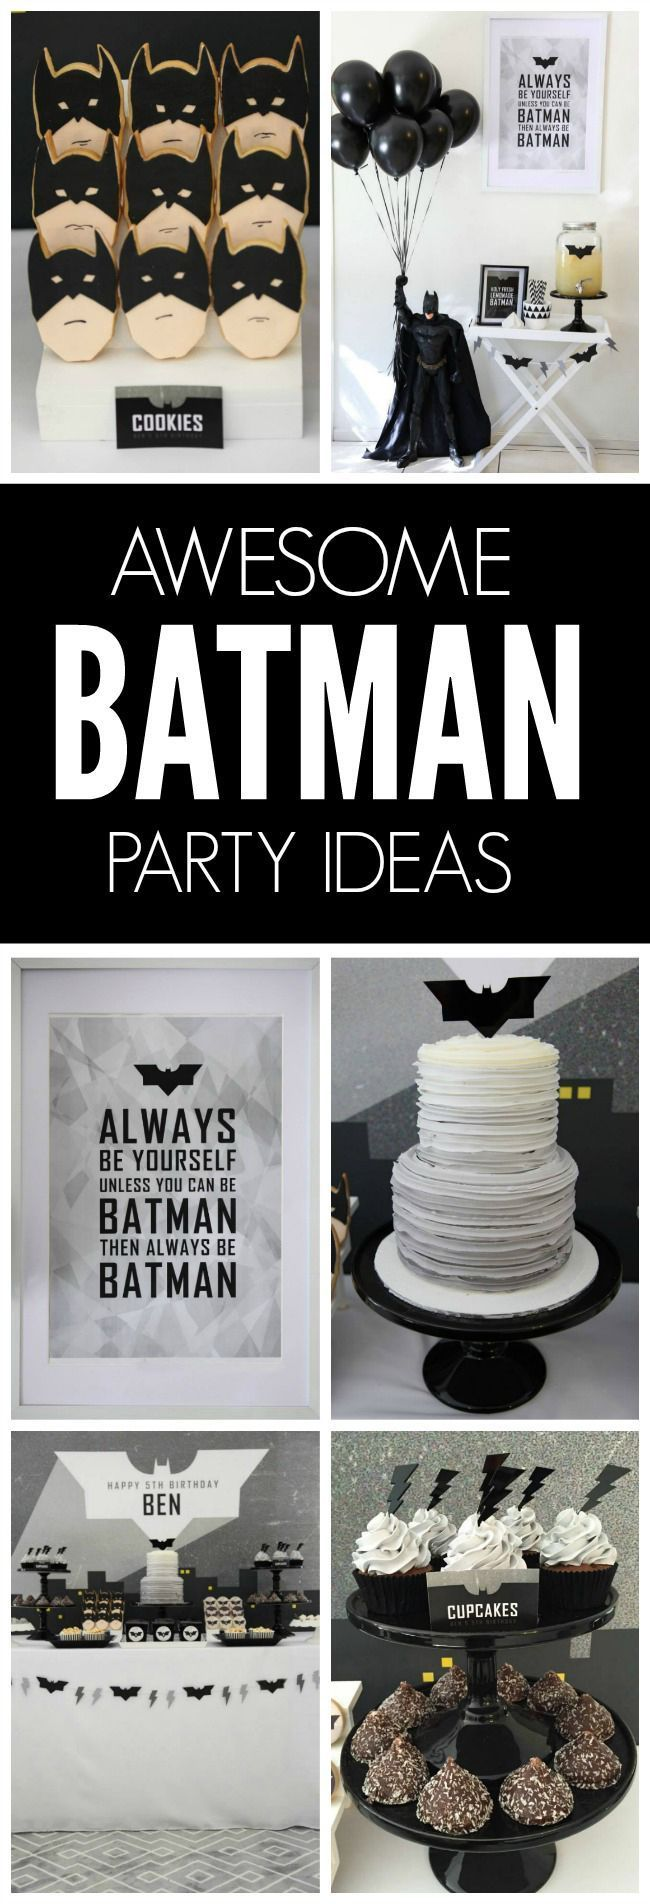 This fun, modern take on a birthday party will have all of the party  goers feeling like Dark Knight himself. Pair this fun idea with cookie baterangs for the extra Batman touch.